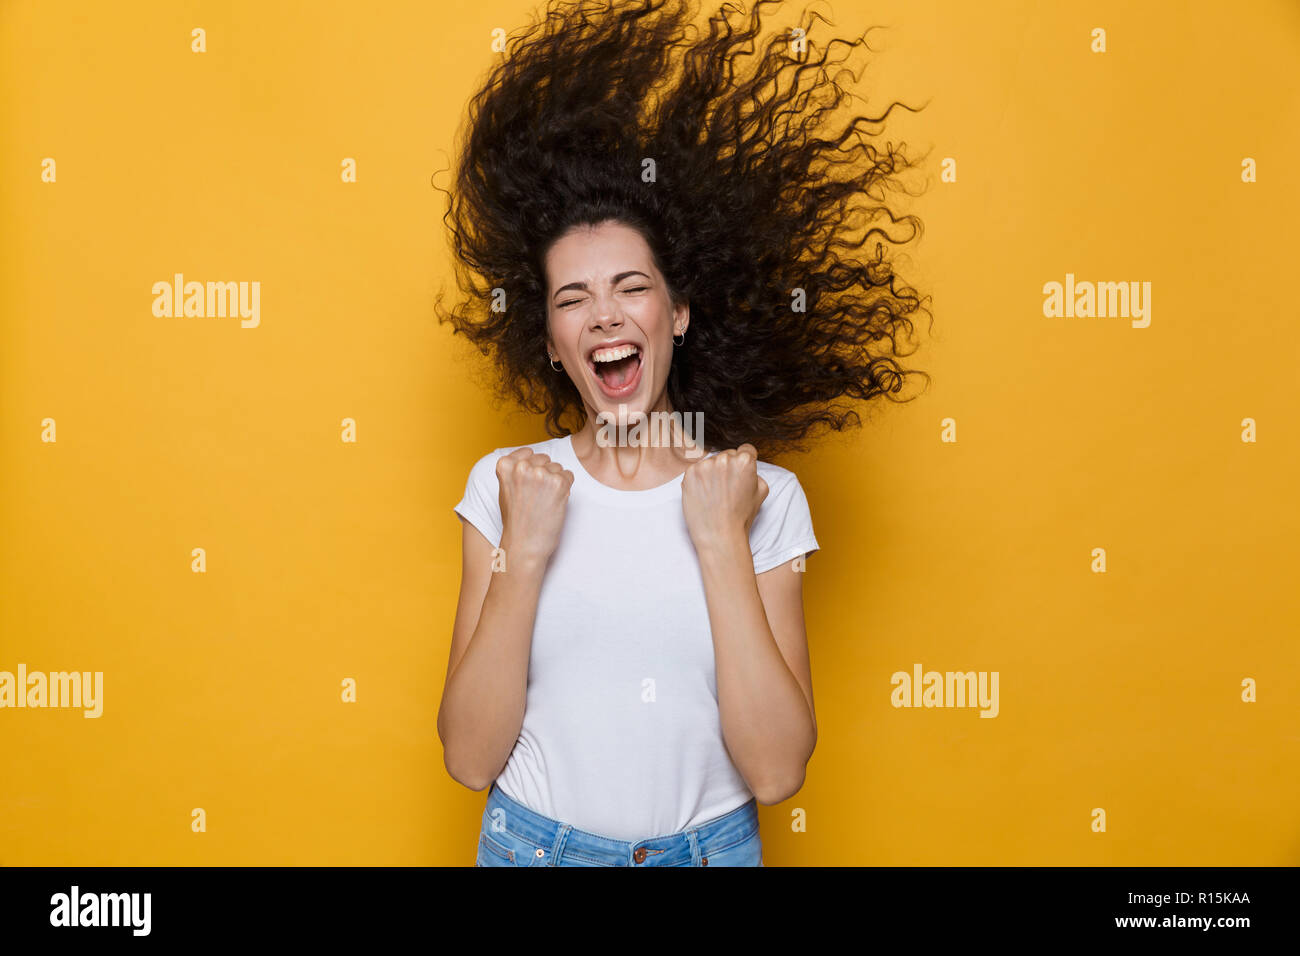 Image of excited woman with shaking hair screaming and rejoicing isolated over yellow background - Stock Image